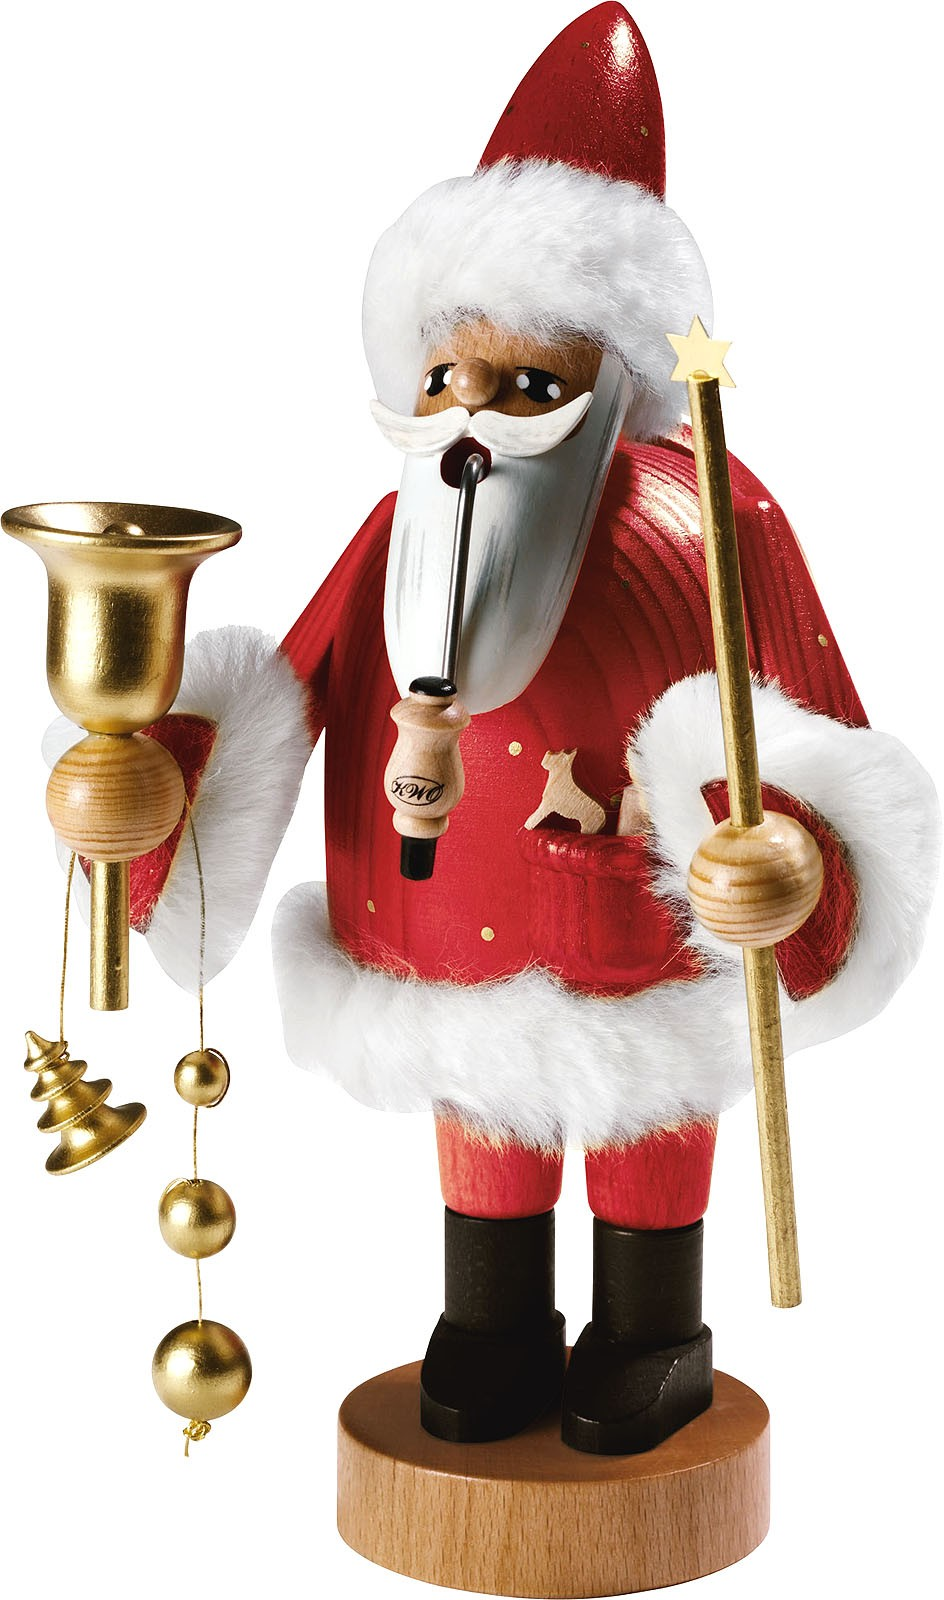 incense smoker, Santa Claus -the bearded men- 14.57 inches